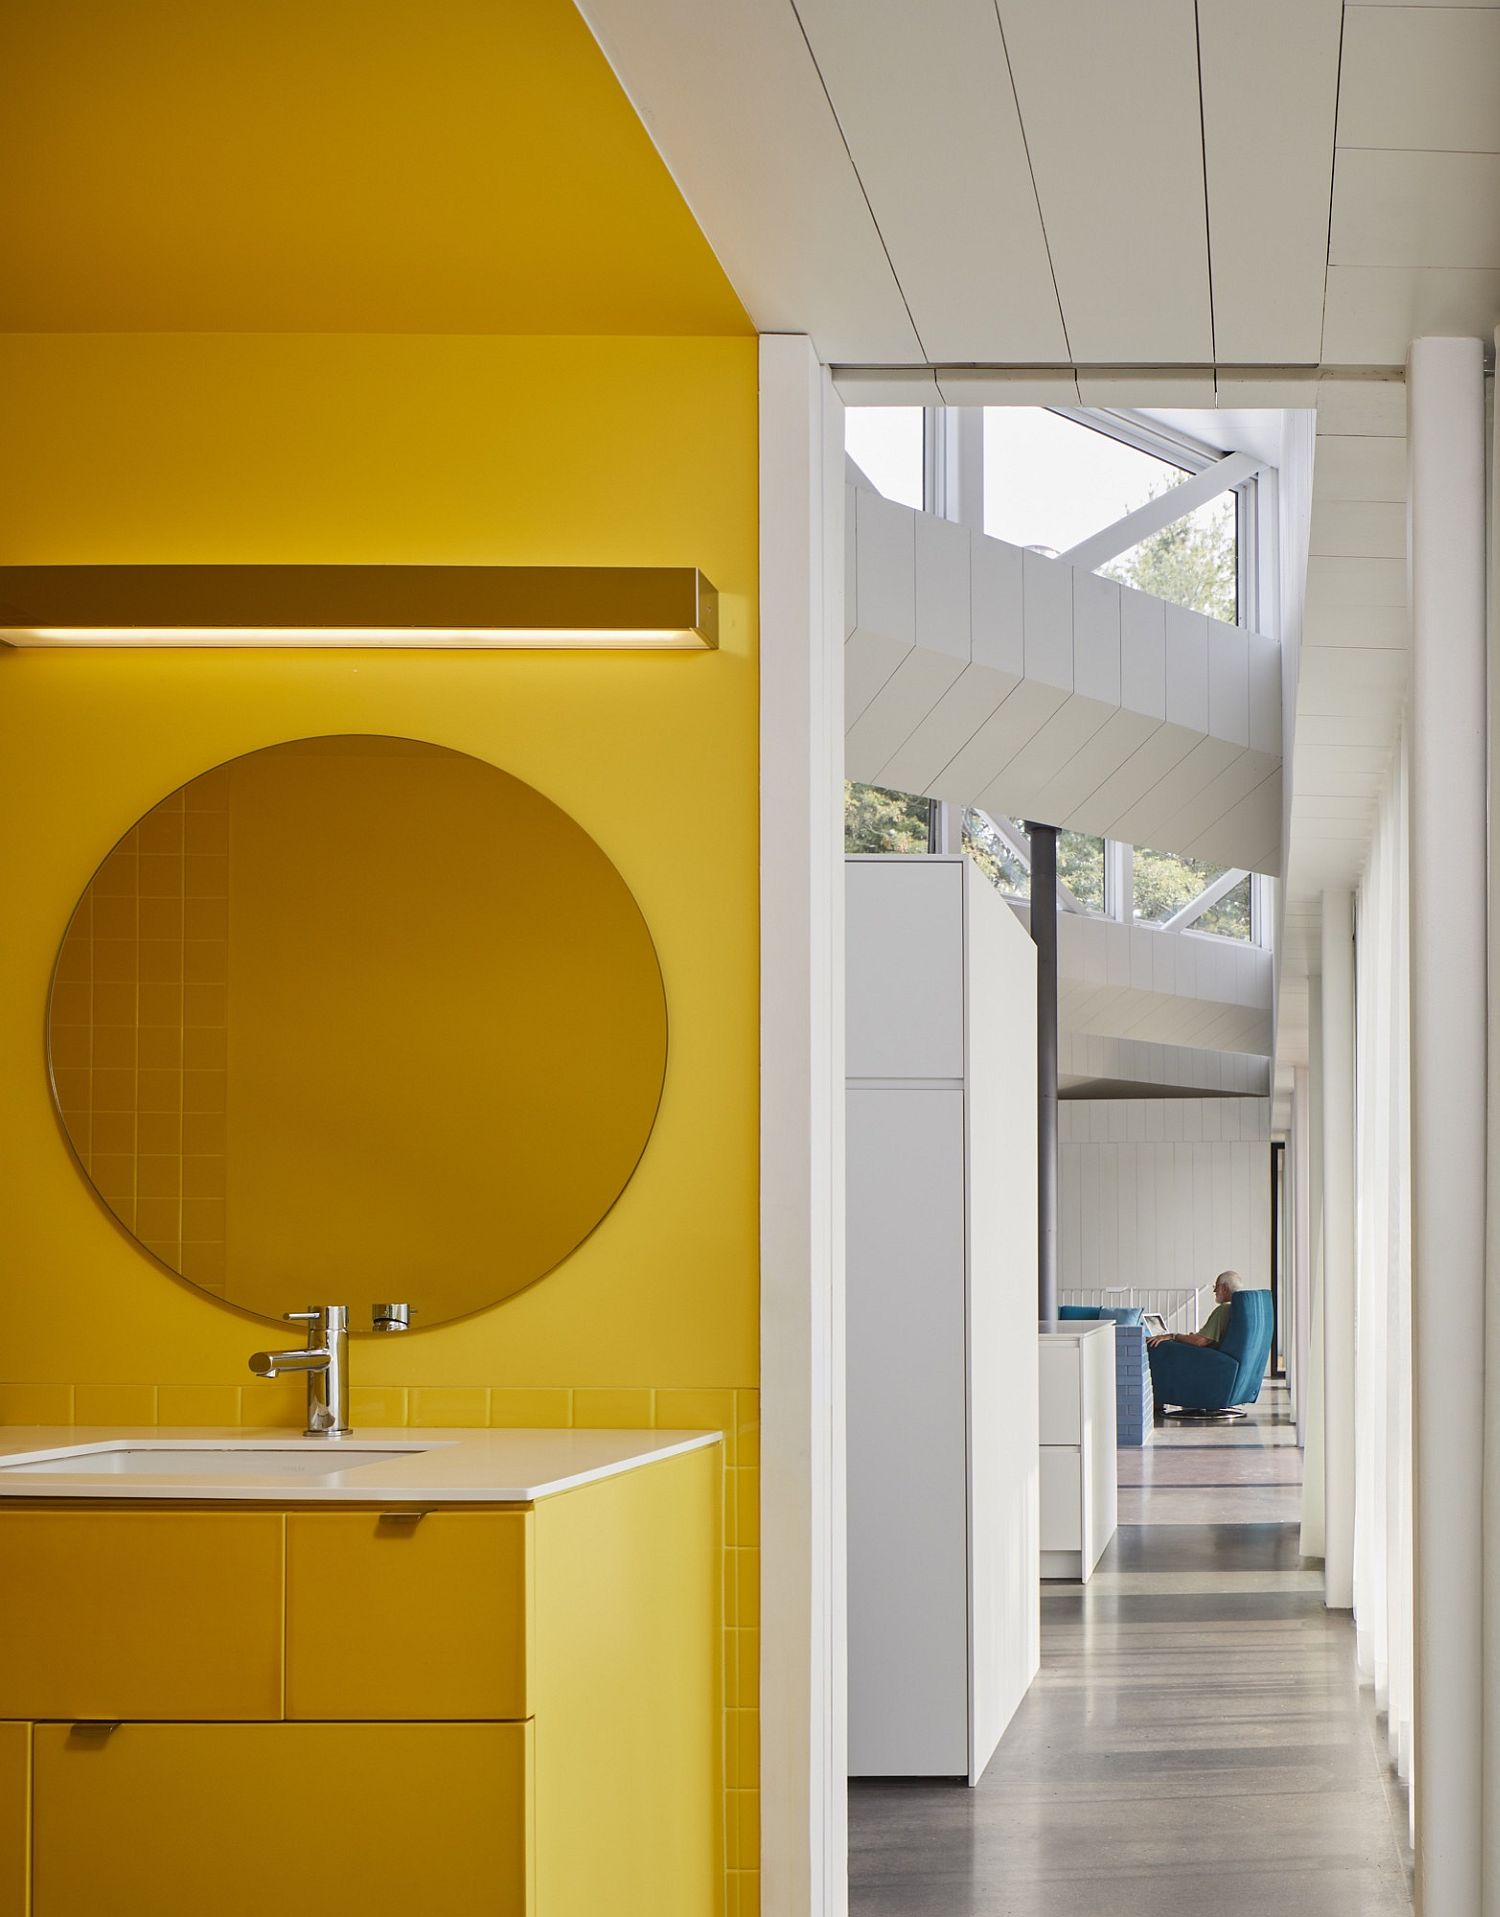 Bright yellow walls bring lively elegance to the interior